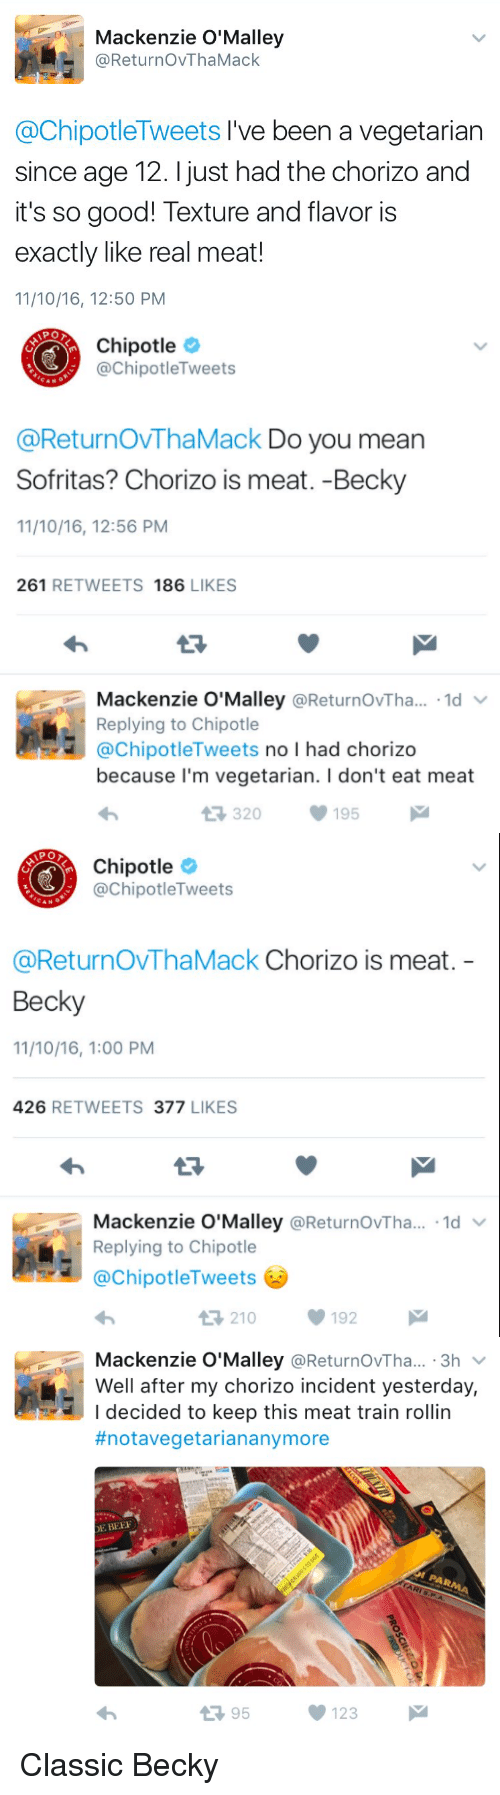 eating meat: Mackenzie O'Malley  ReturnovThaMack  @ChipotleTweets I've been a vegetarian  since age 12. just had the chorizo and  it's so good! Texture and flavor is  exactly like real meat!  11/10/16, 12:50 PM   Chipotle  @Chipotle Tweets  @ReturnovThaMack Do you mean  Sofritas? Chorizo is meat. -Becky  11/10/16, 12:56 PM  261  RETWEETS  186  LIKES  Mackenzie O'Malley  Returnov Tha...  1d  V  Replying to Chipotle  @Chipotle Tweets  no l had chorizo  because I'm vegetarian. l don't eat meat  t R, 320  195  M   Chipotle  @Chipotle Tweets  @Return OVThaMack Chorizo is meat  Becky  11/10/16, 1:00 PM  426  RETWEETS 377  LIKES  Mackenzie O'Malley  @ReturnovTha... 1d  v  Replying to Chipotle  ChipotleTweets  V 192  t 210   Mackenzie O'Malley  @ReturnovTha... 3h  Well after my chorizo incident yesterday,  I decided to keep this meat train rollin  #notavegetarian anymore  DE BEER  t 95  123 Classic Becky